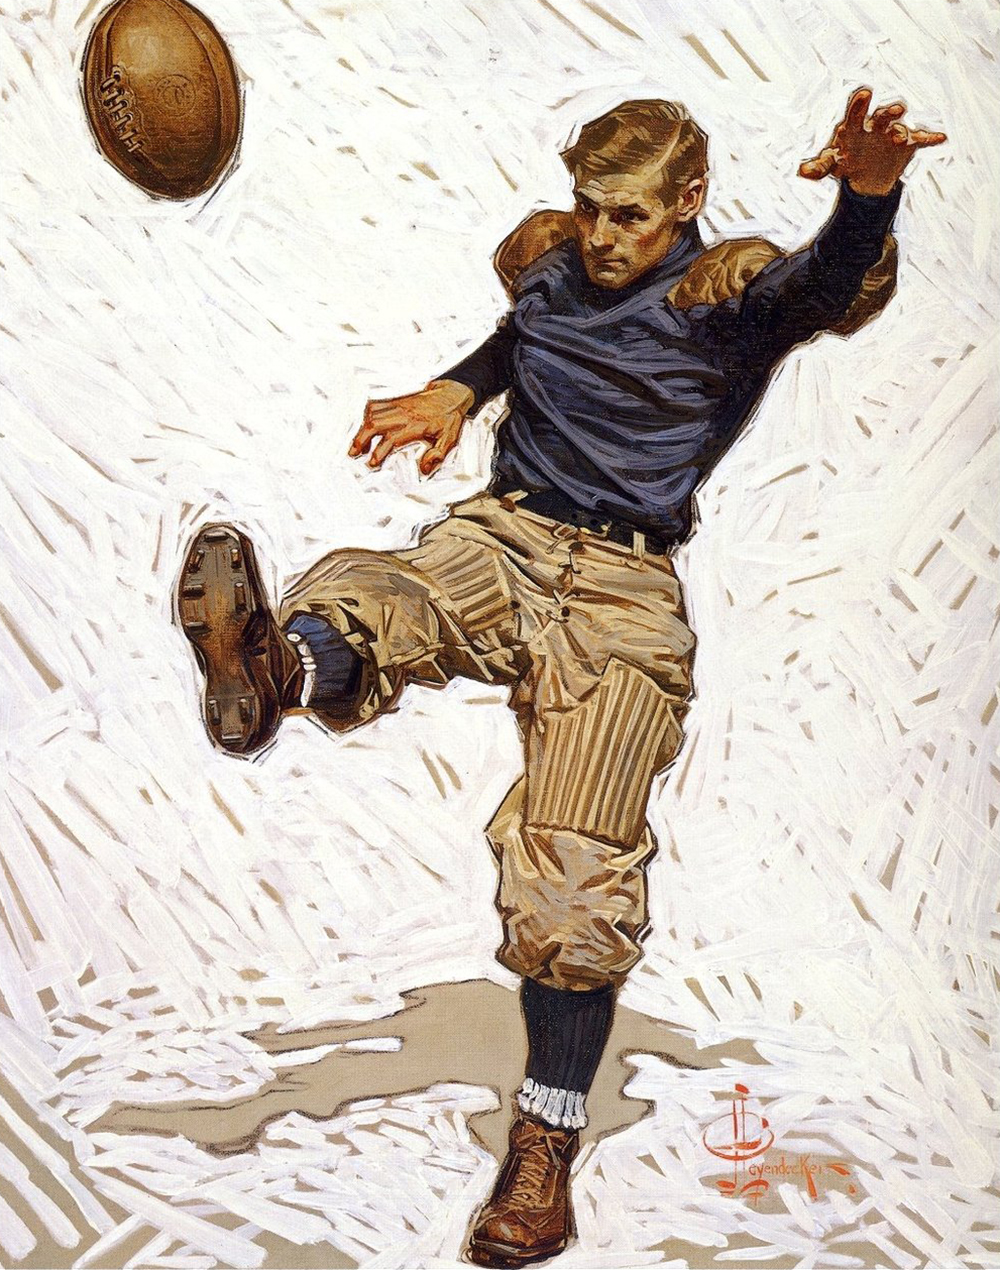 The Punter, by J.C. Leyendecker, from The Saturday Evening Post, 1908.